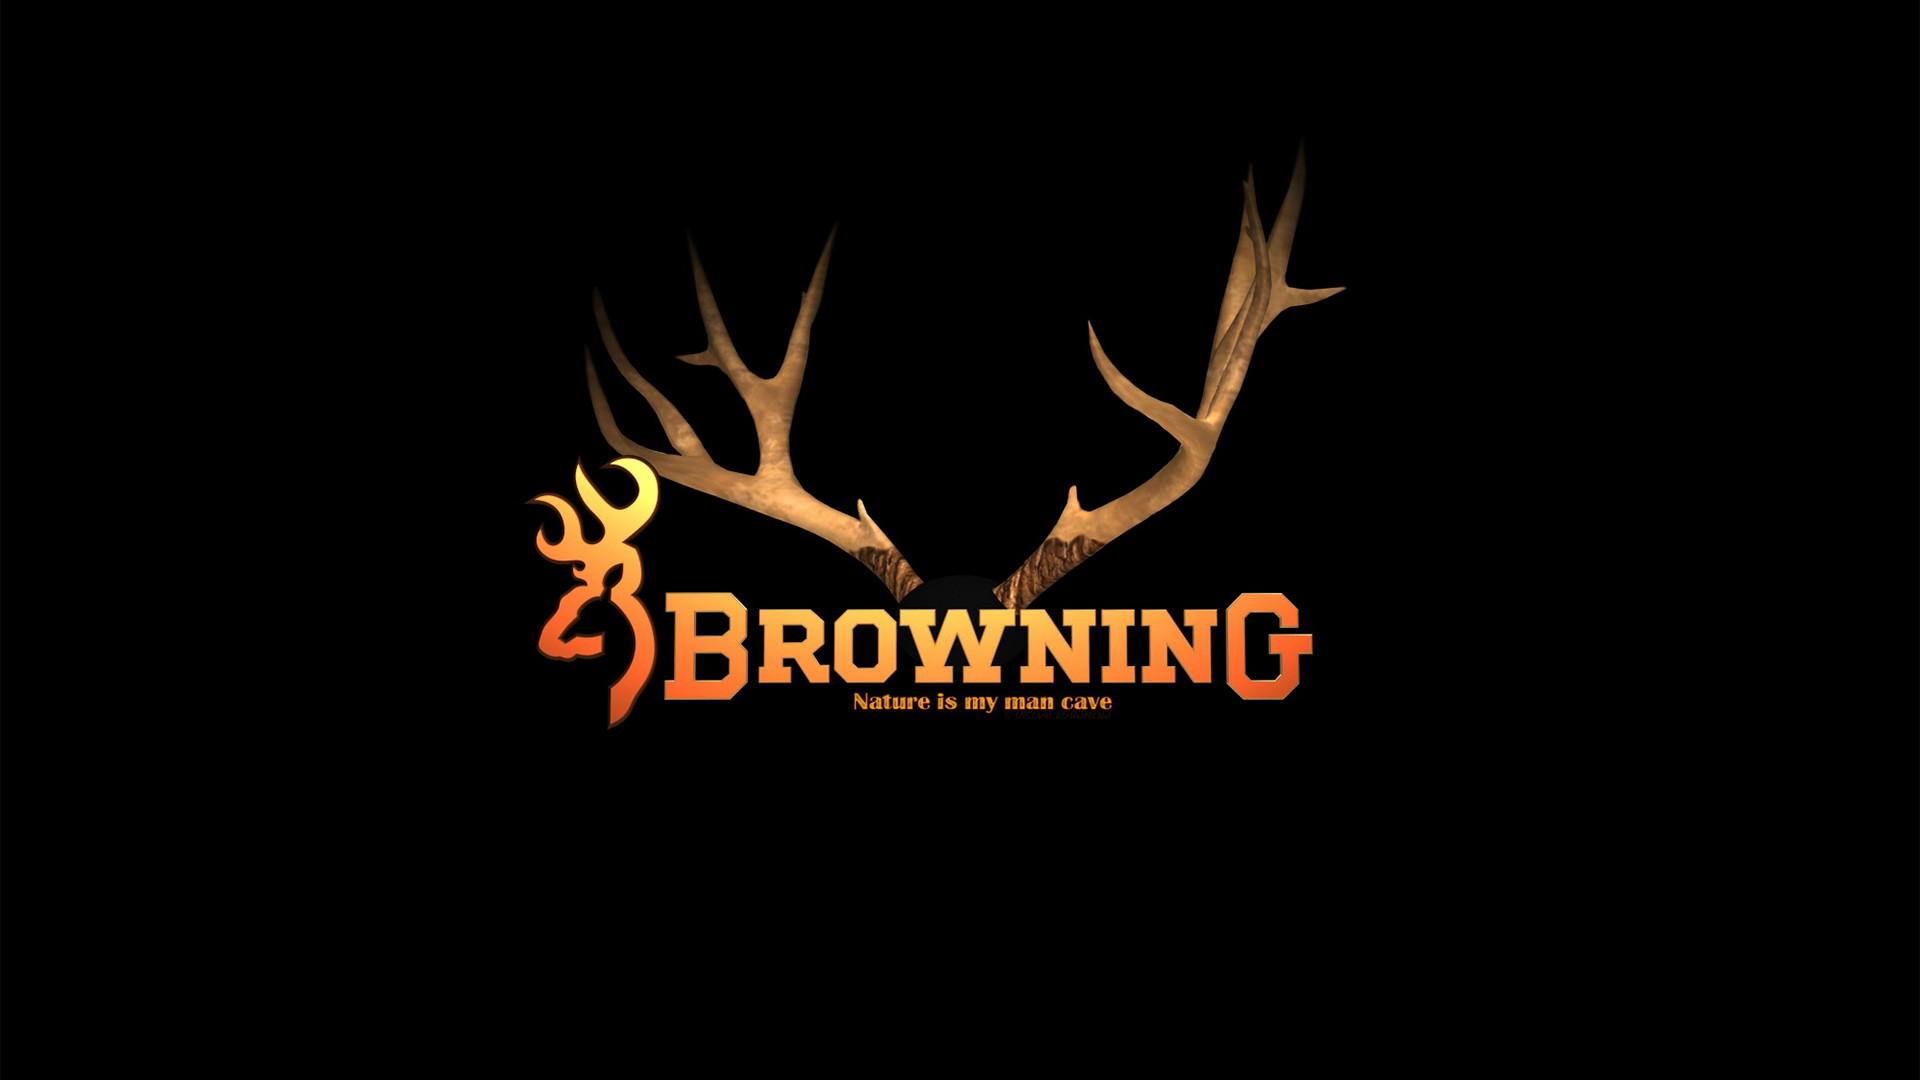 List of synonyms and antonyms of the word logo wallpaper browning browning symbol wallpaper wallpapersafari biocorpaavc Choice Image